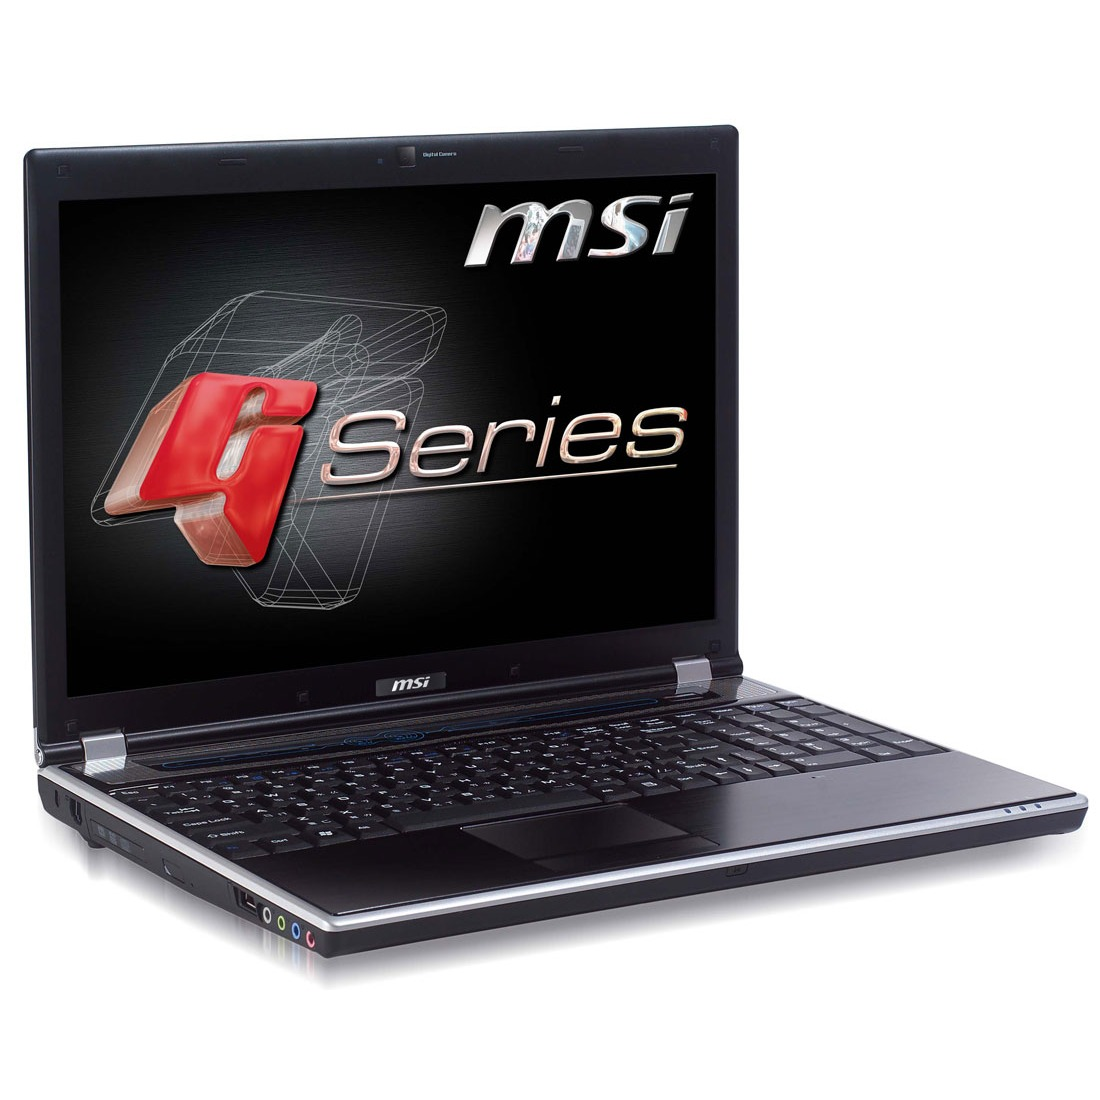 "PC portable MSI GX623-030 MSI GX623-030 - Intel Core 2 Duo P7350 4 Go 500 Go 15.4"" TFT Graveur DVD Super Multi Wi-Fi G/Bluetooth Webcam Vista Premium (garantie 2 ans)"